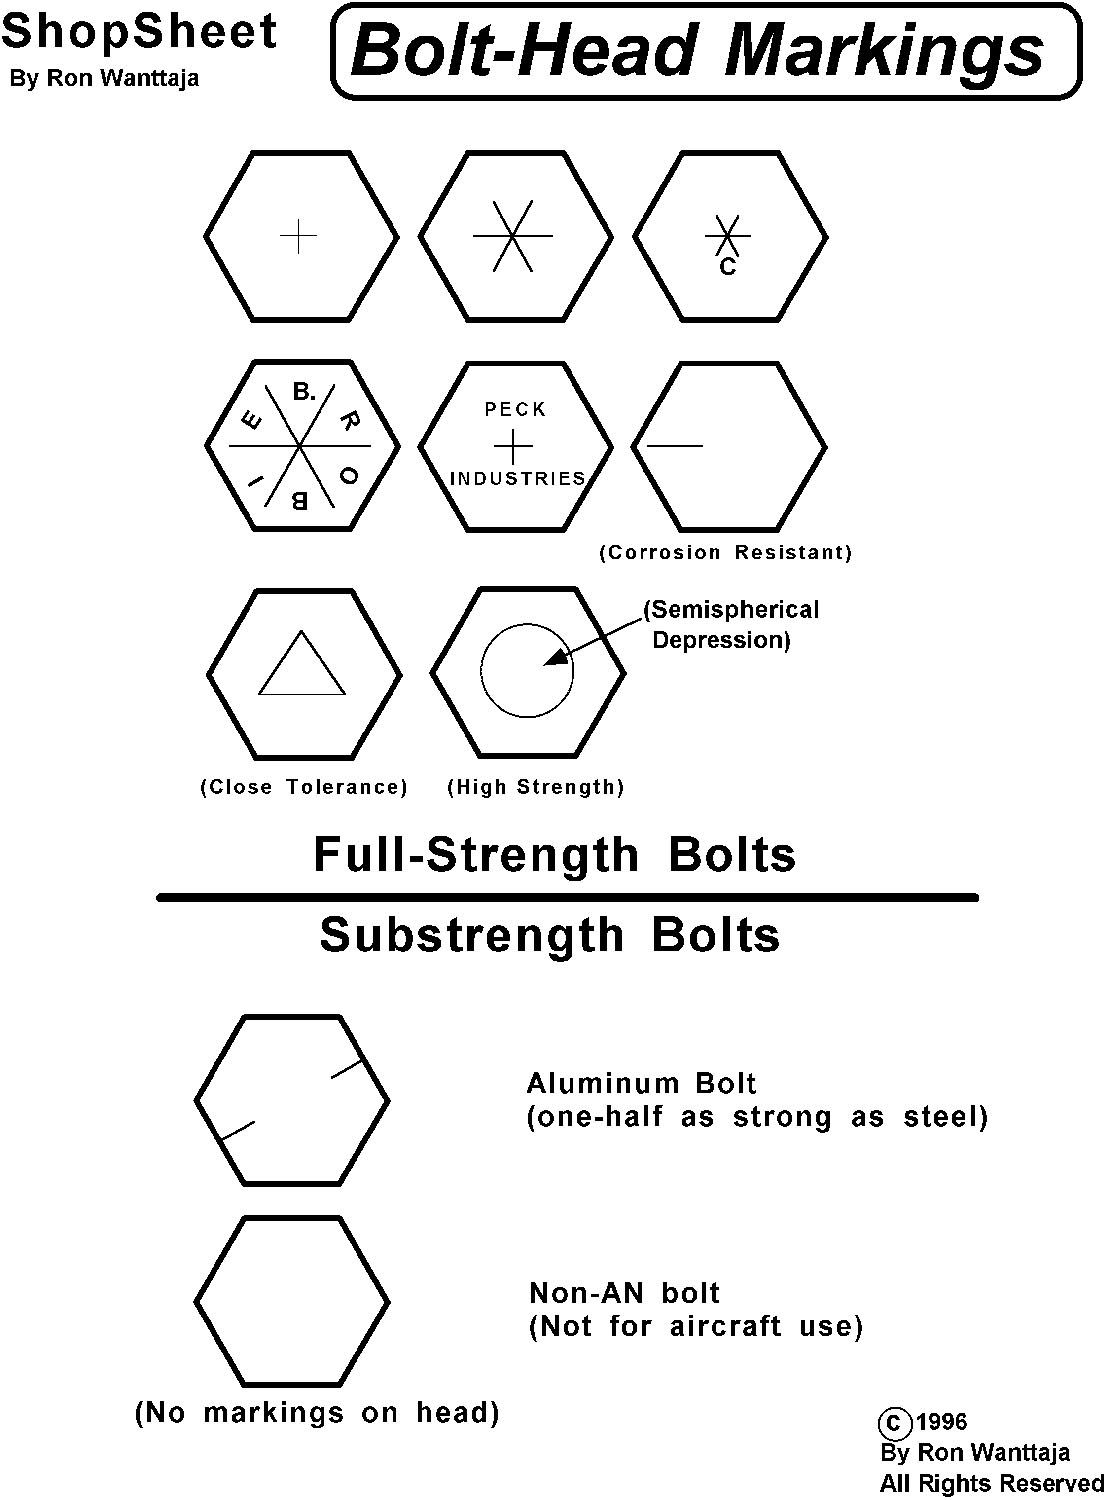 Bolt markings could develop symbols for power show daily could develop symbols for power show daily track biocorpaavc Choice Image